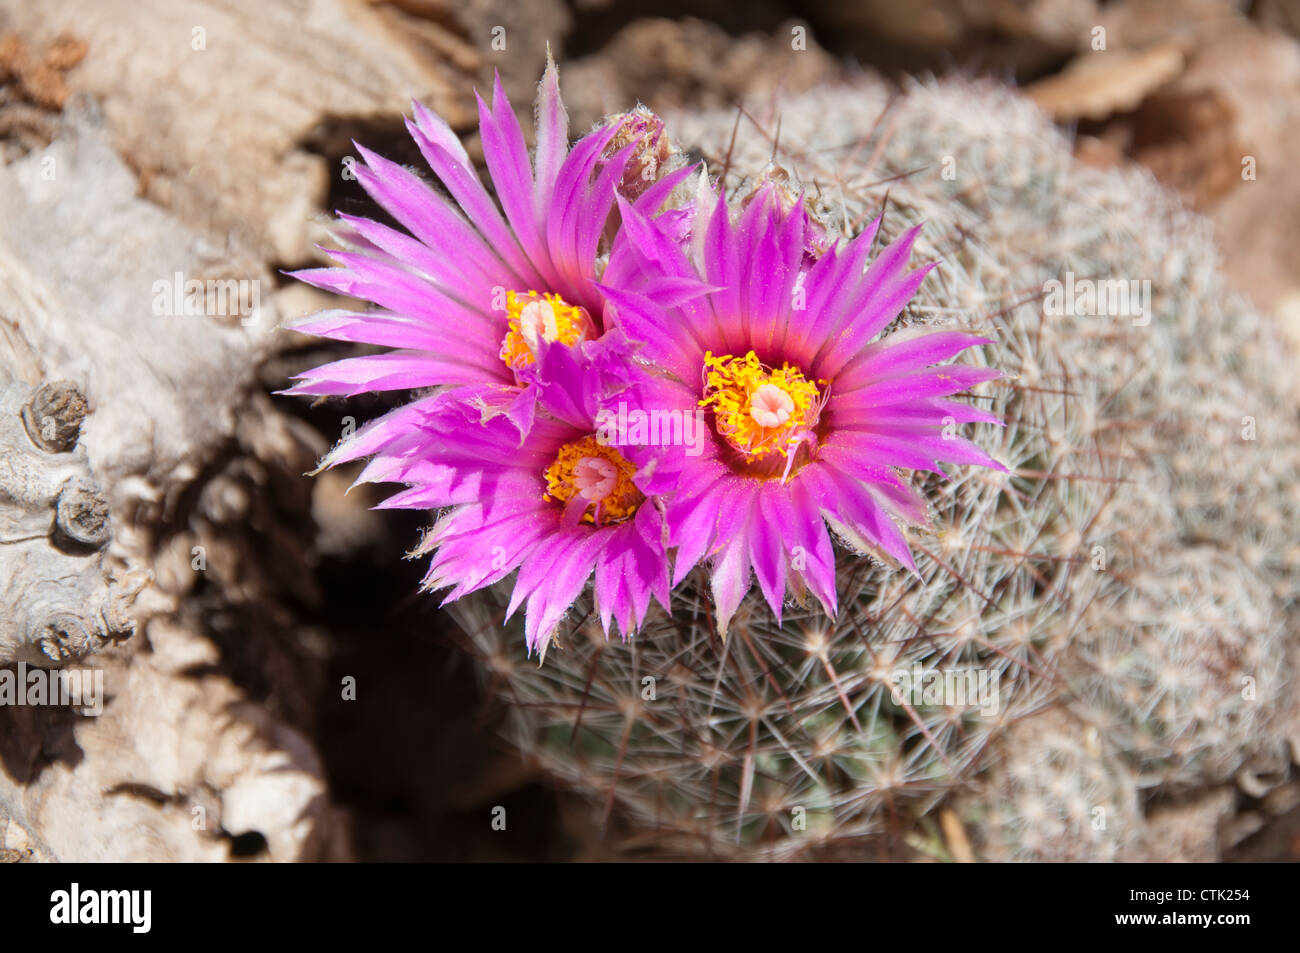 Hedgehog Cactus Pink Flowers Stock Photos Hedgehog Cactus Pink